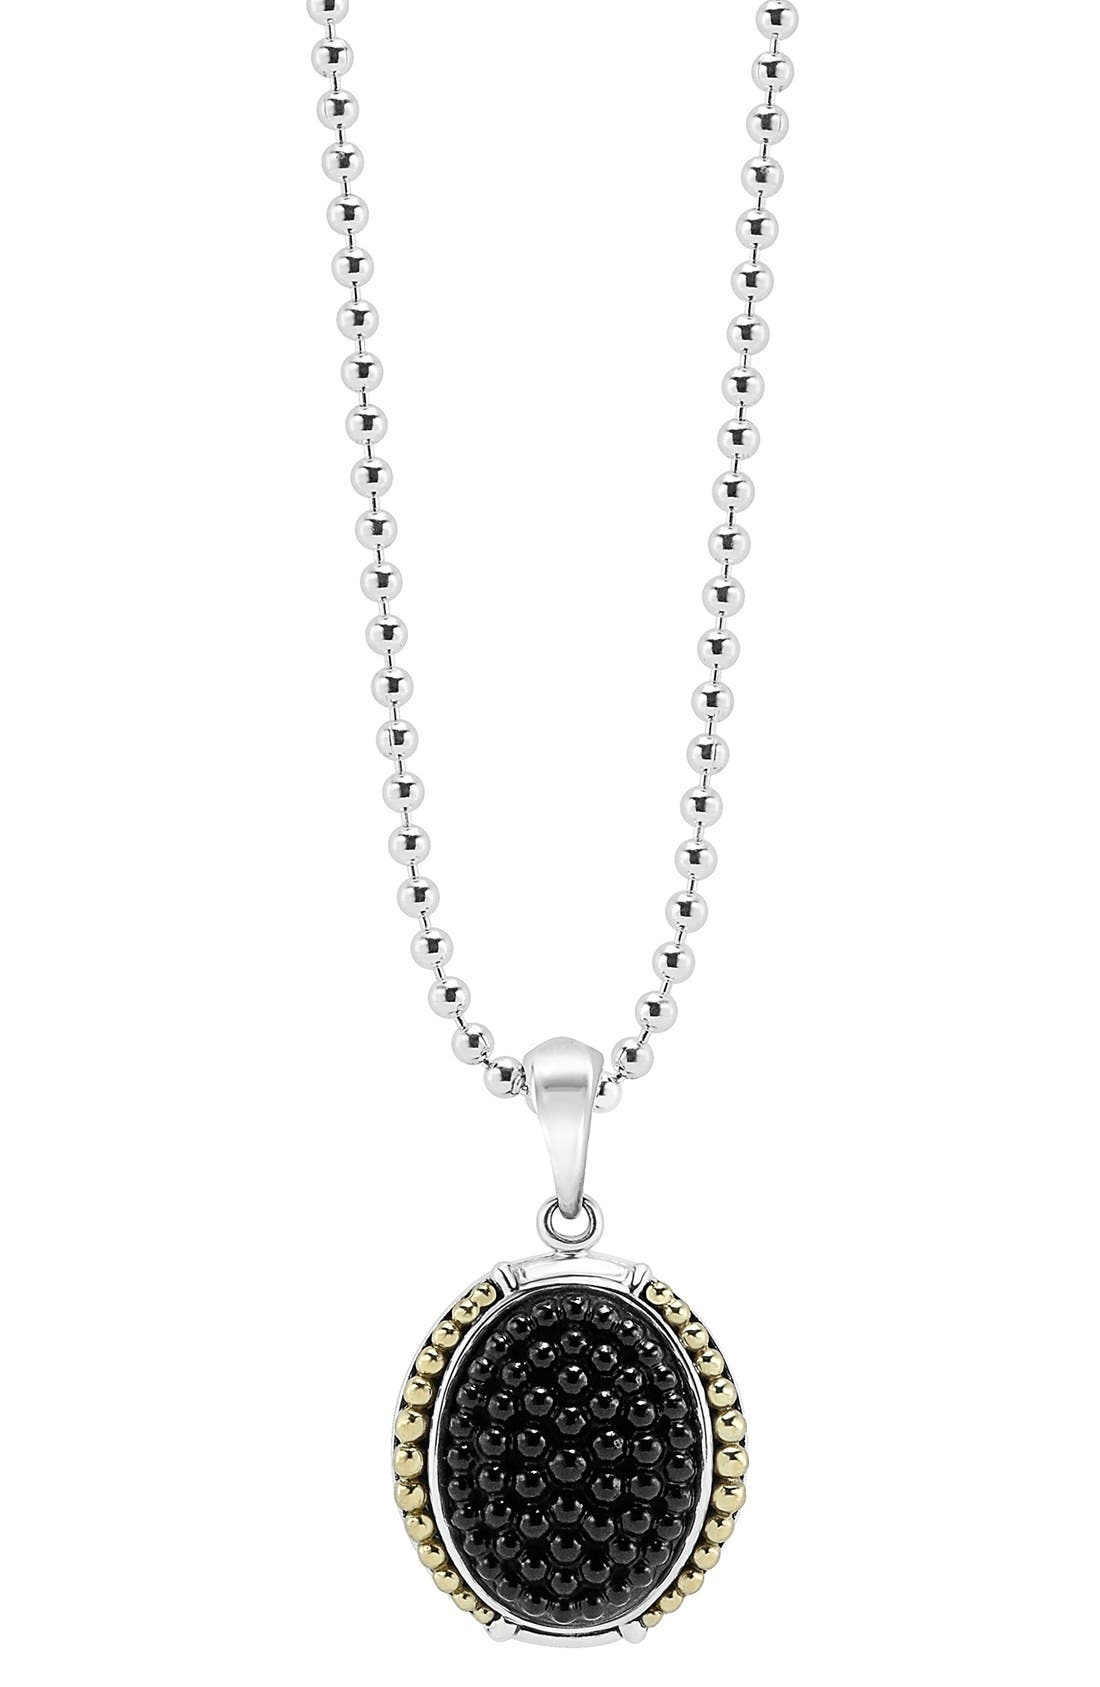 'Black Caviar' Oval Pendant Necklace,                             Main thumbnail 1, color,                             Silver/ Gold/ Onyx